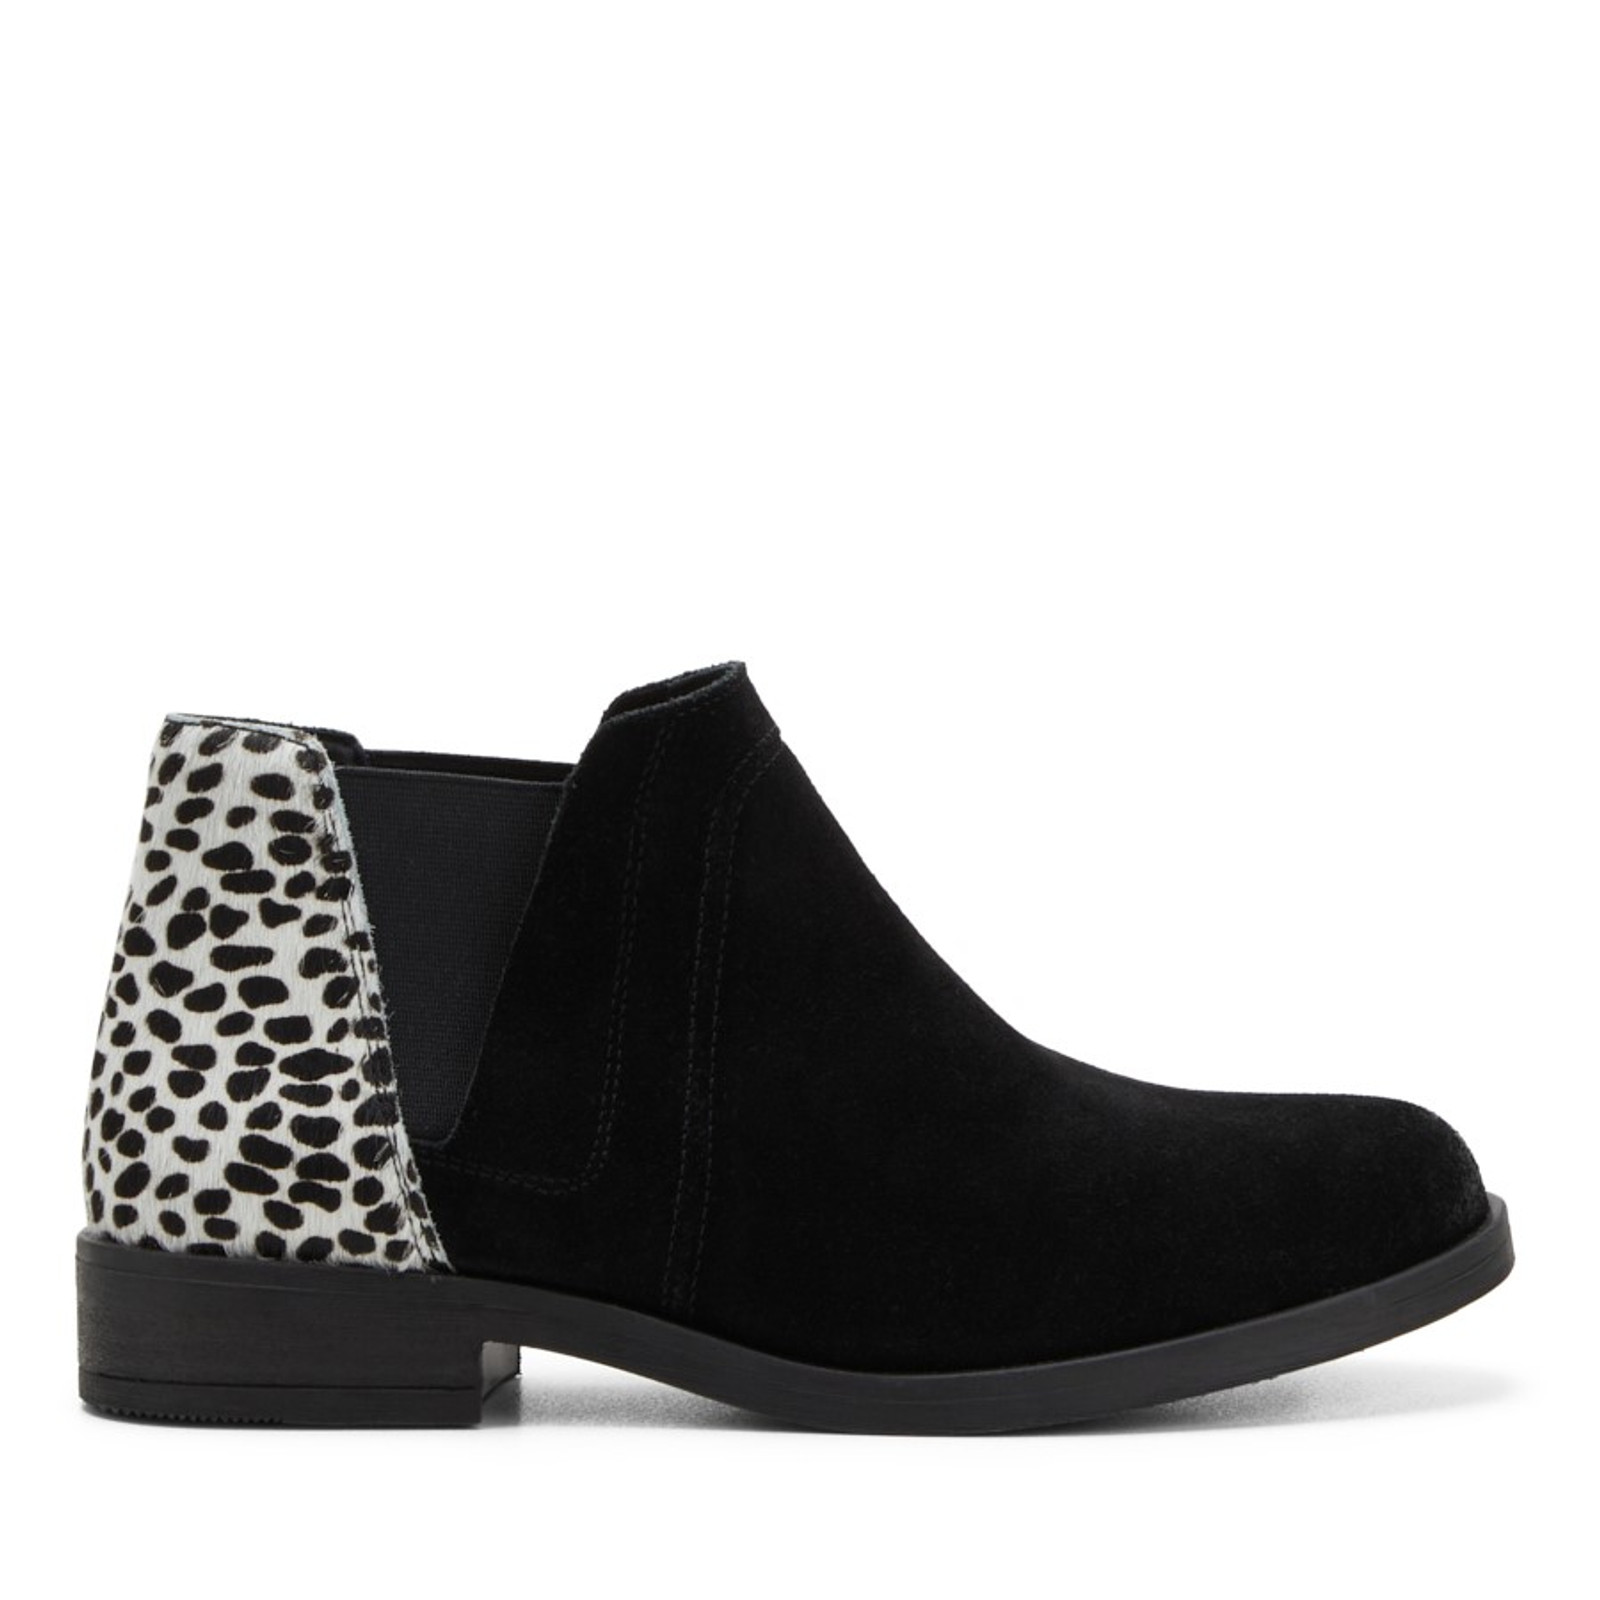 Clarks Womens DEMI2 BEAT Black Dalmation